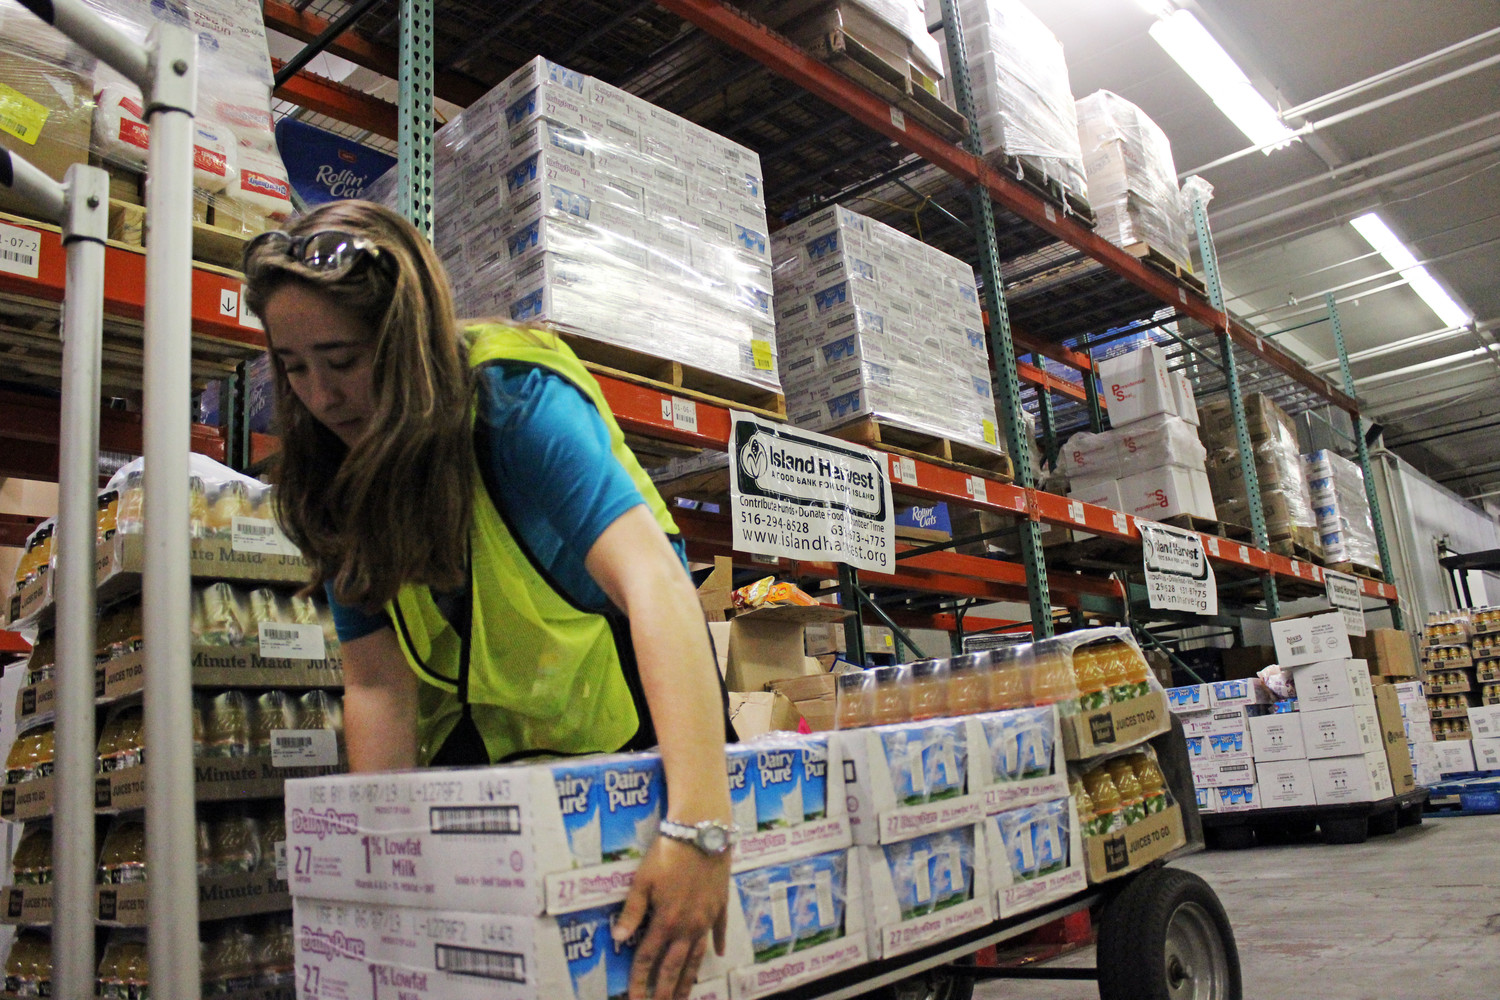 Island Harvest Food Bank and Jovia Financial Credit Union — formally NEFCU — will be providing meals to hundreds of affected by the Covid-19 pandemic. Above, Noelle Roth, was interning at Island Harvest and gathering food to distribute to students.